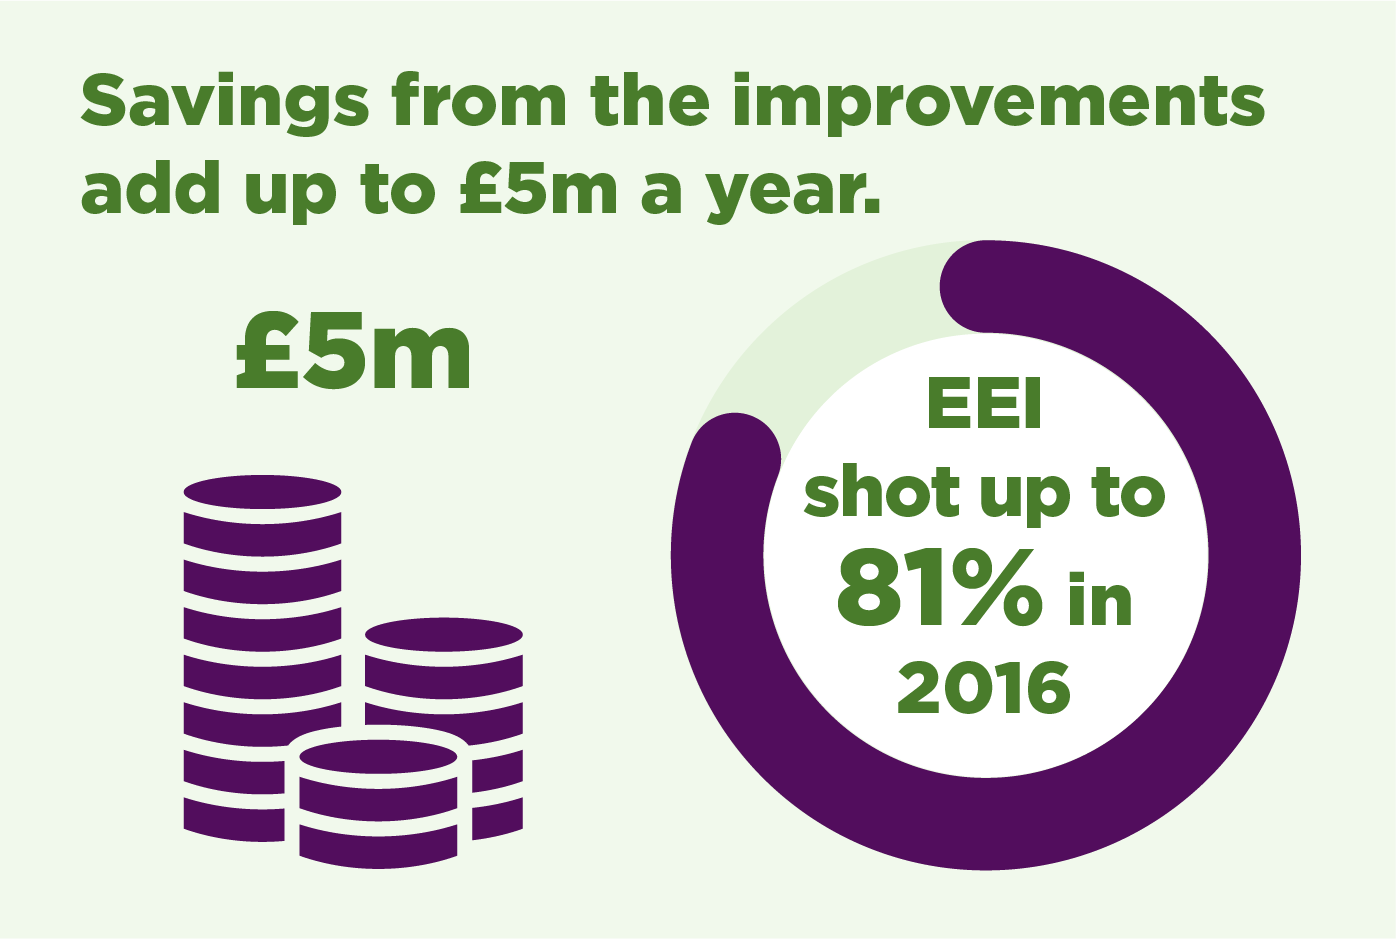 Savings from the imporvements add up to £5m a year